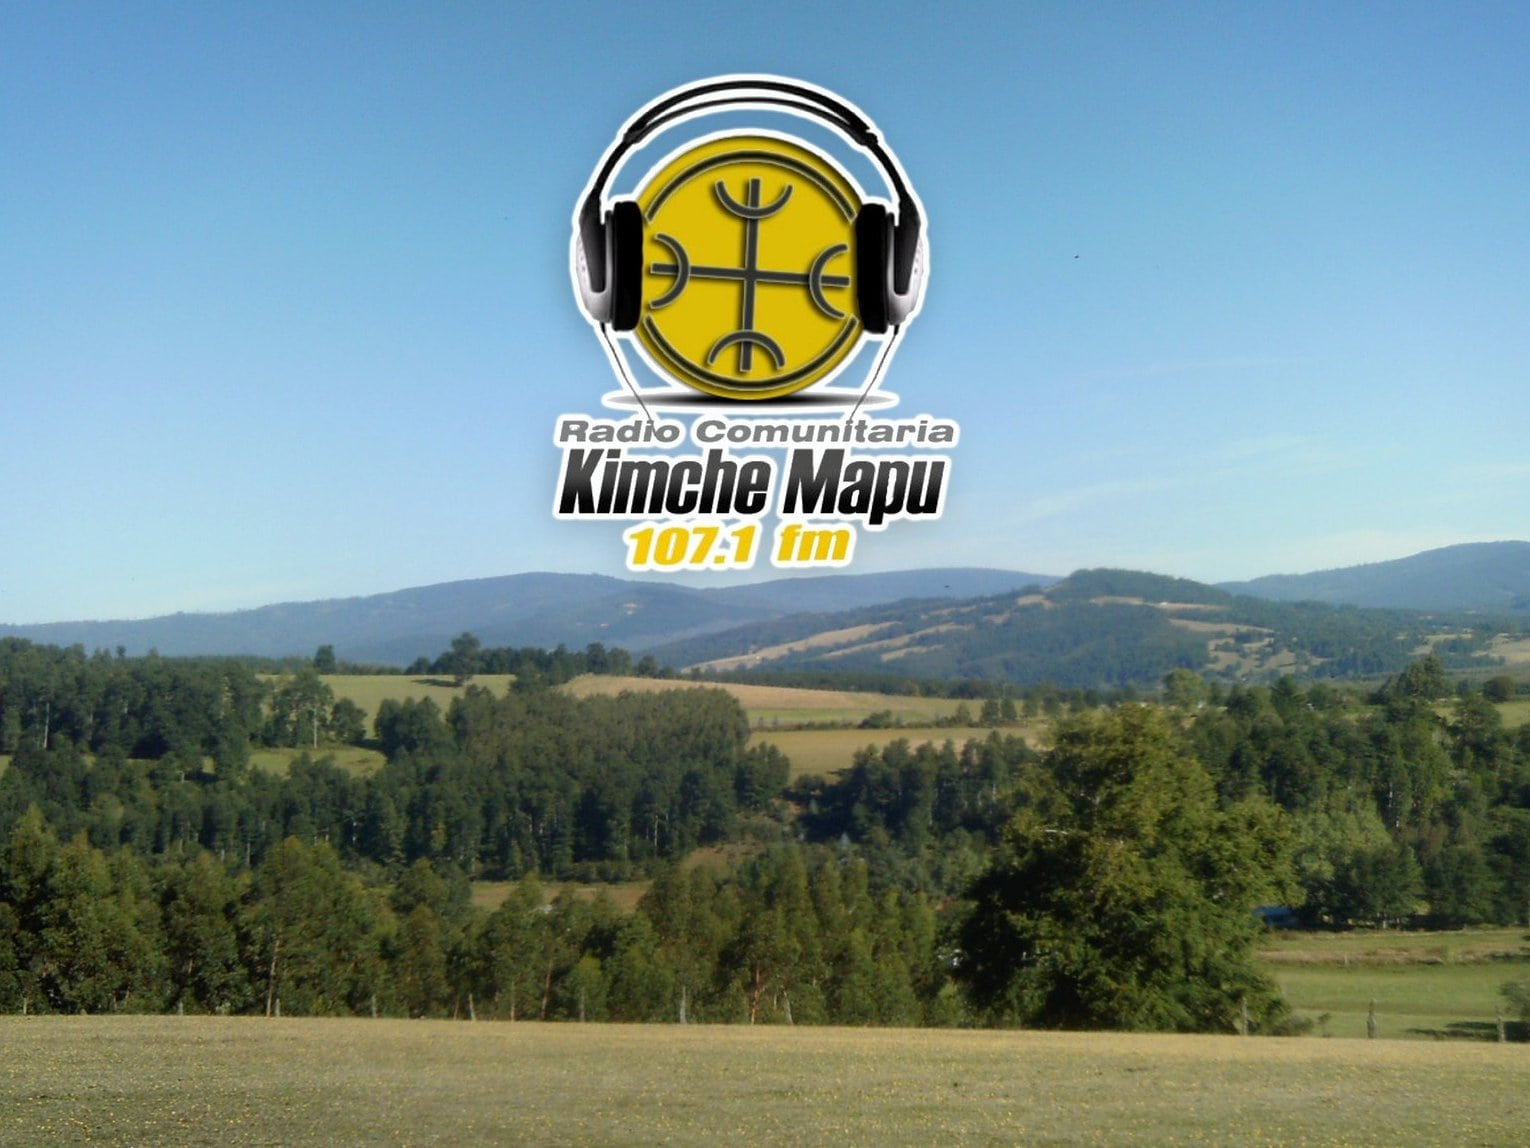 Kimche Mapu, a community radio station based in Southern Chile, was penalized for broadcasting without obtaining authorization., Radio Kimche Mapu/Facebook